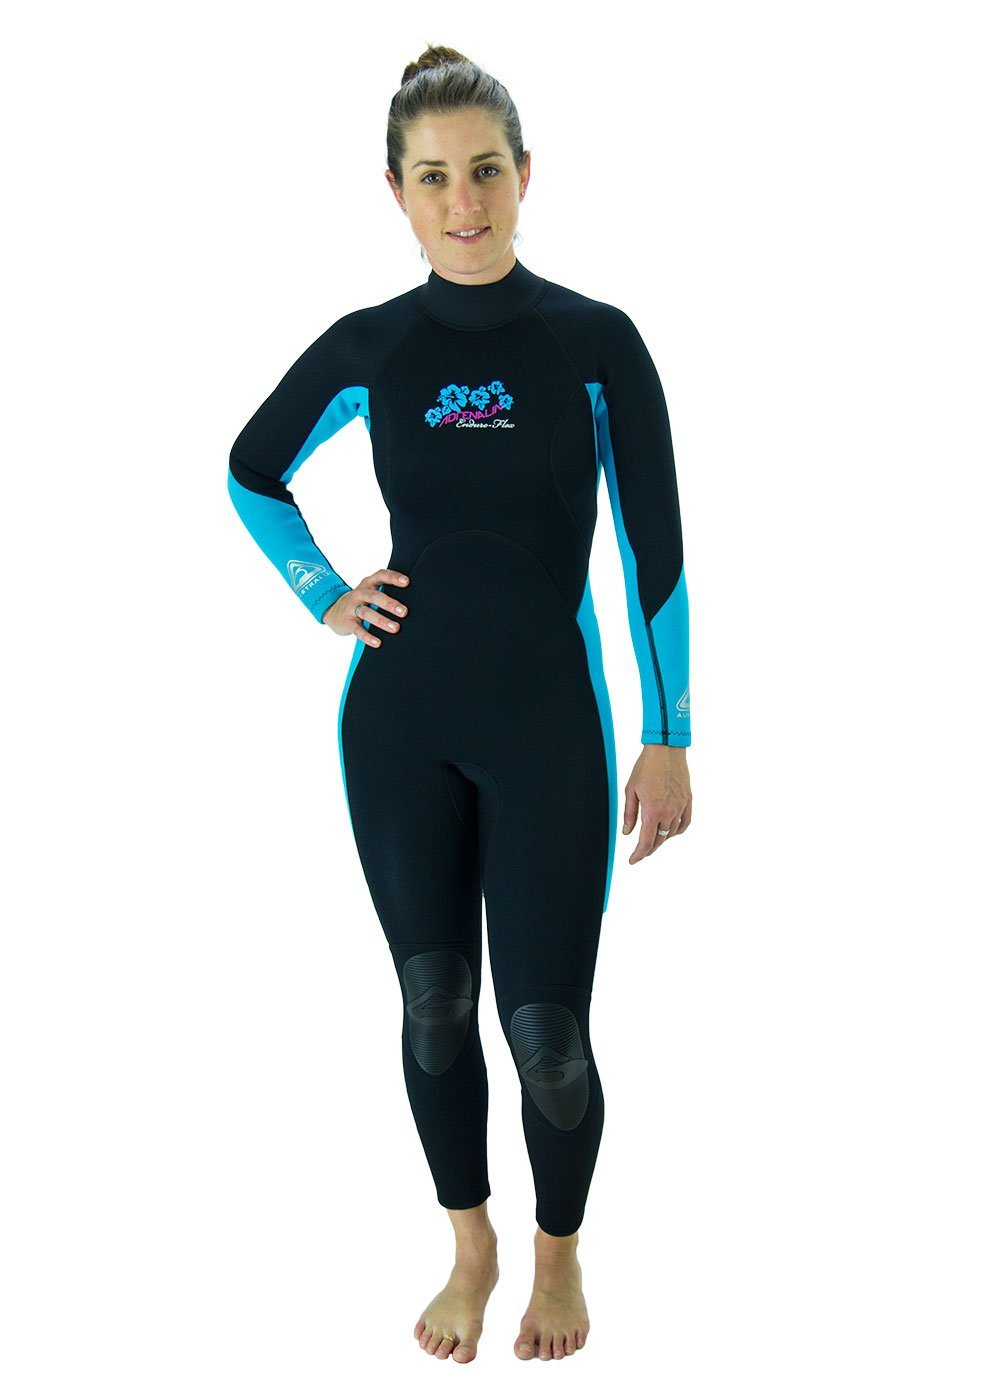 Adrenalin 'Enduro X' 3/2mm Steamer Wetsuit - Womens